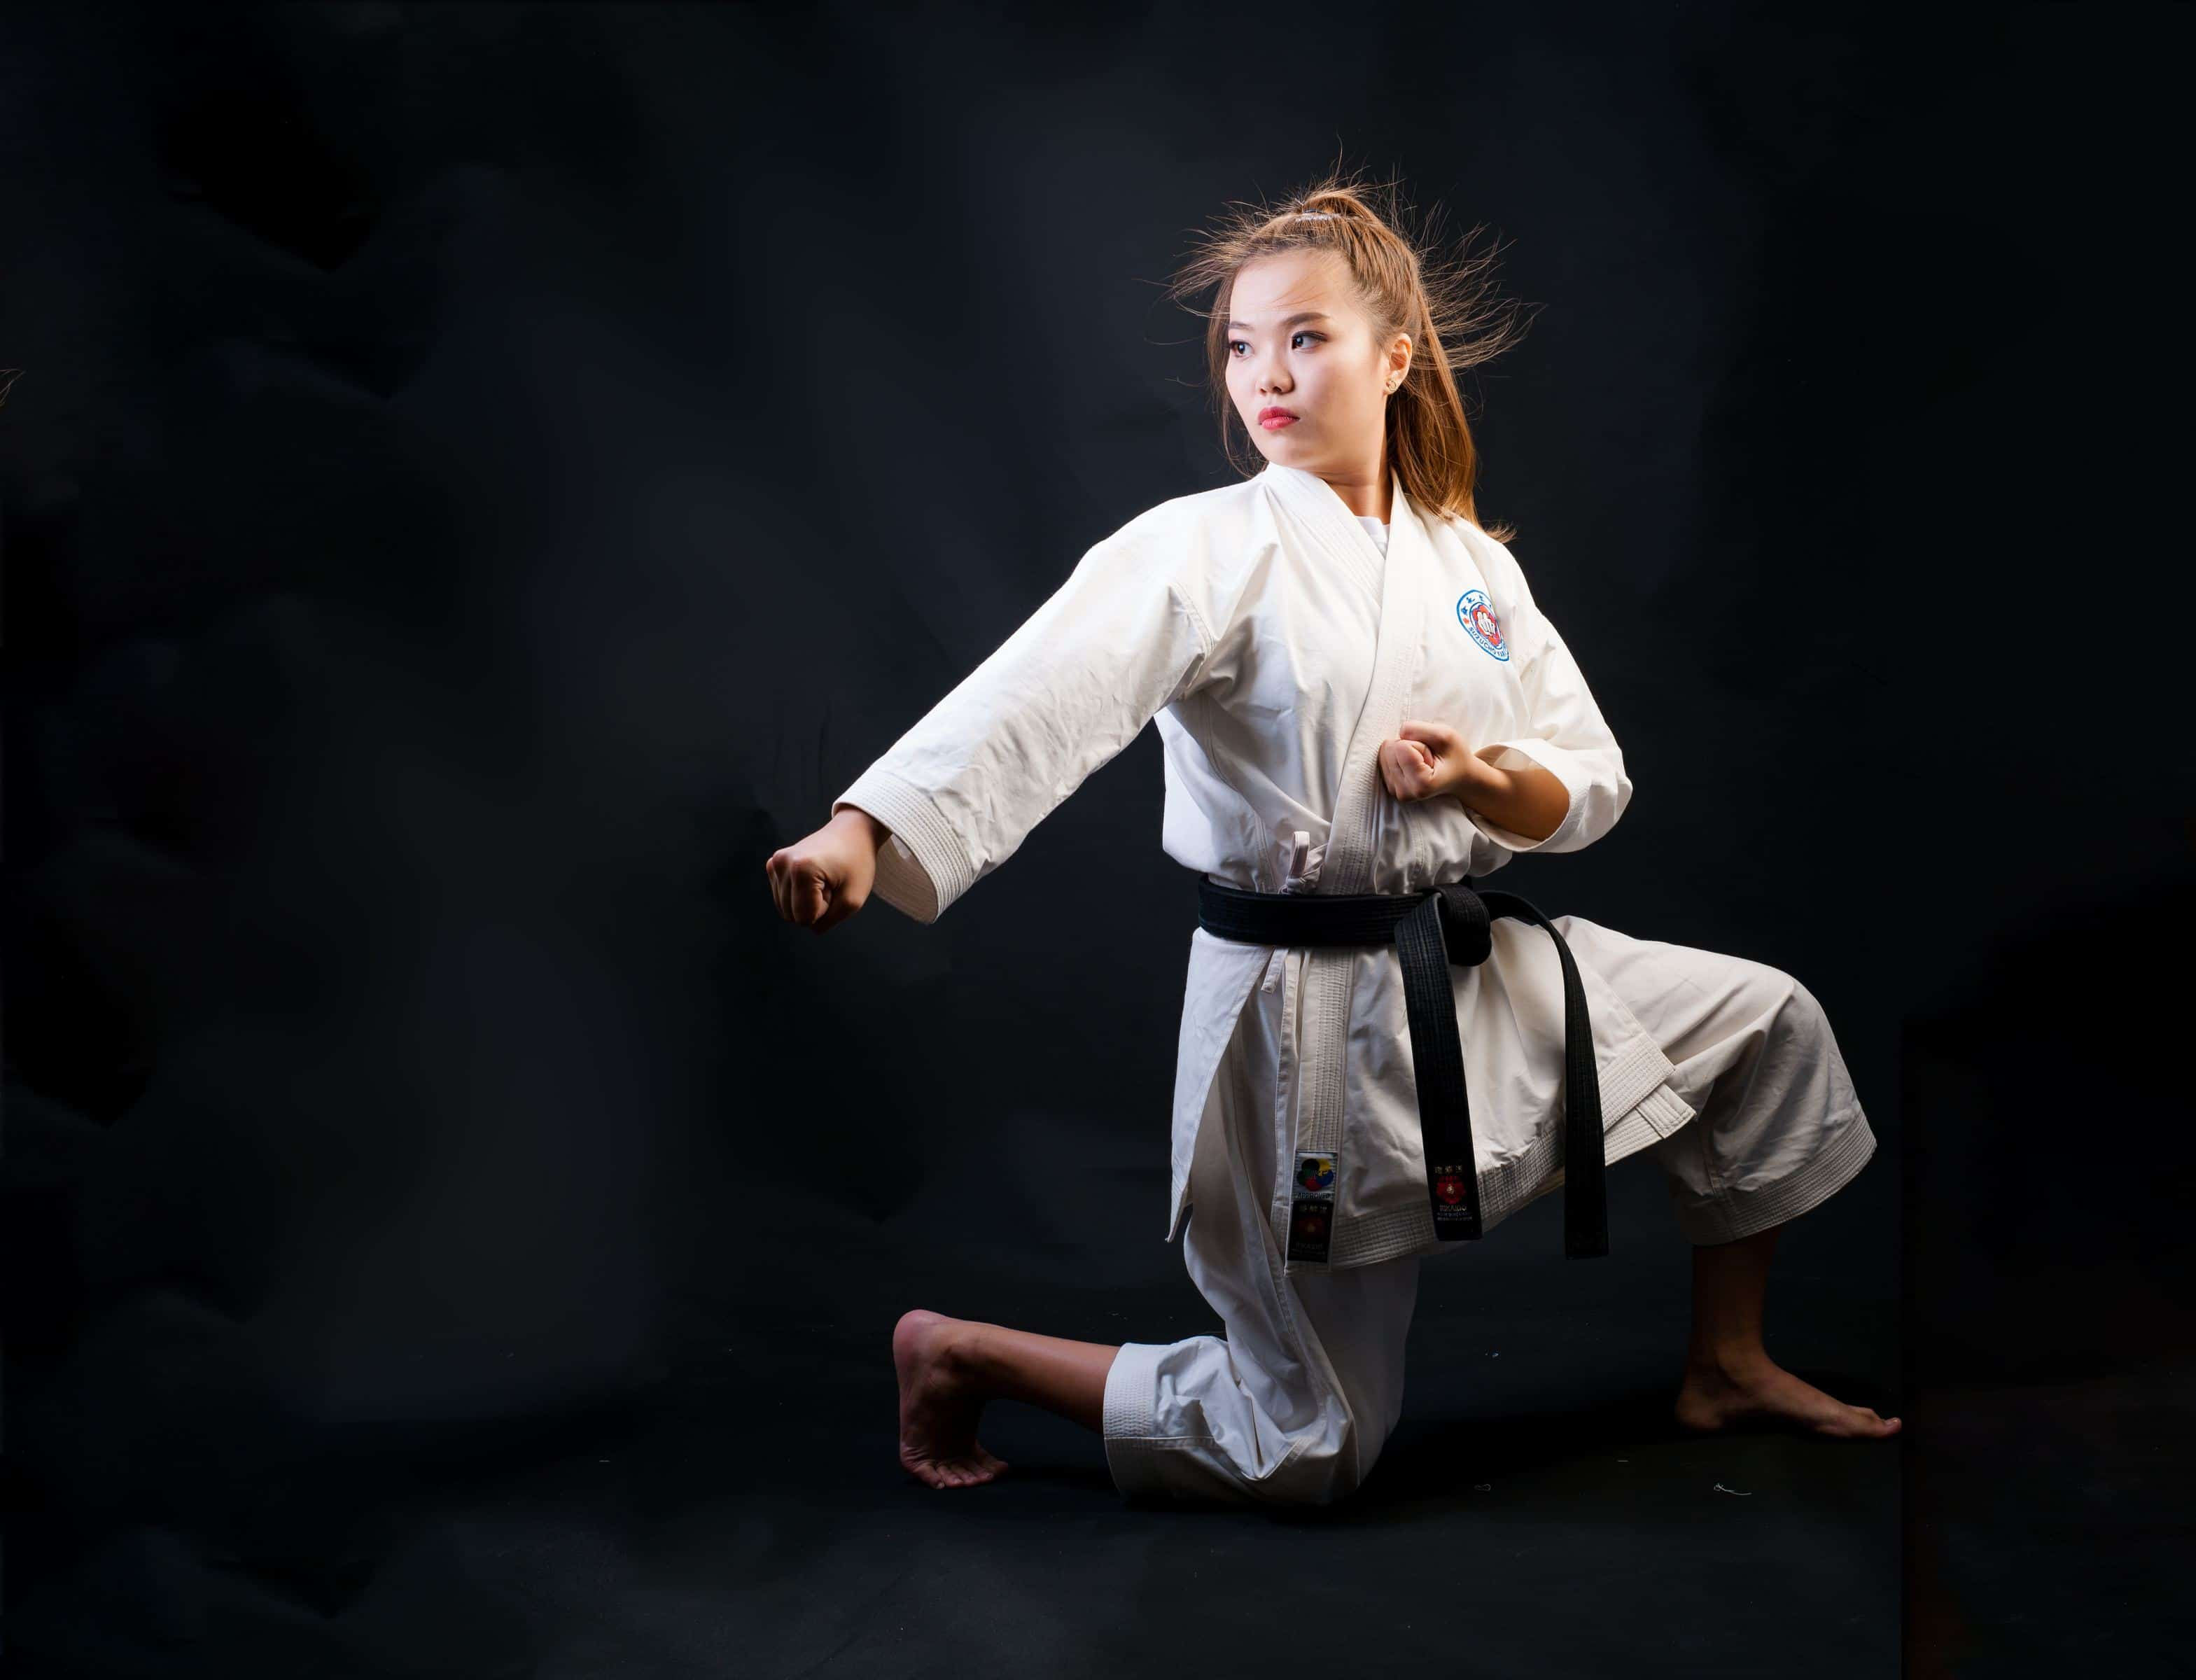 a woman is doing a kungfu move